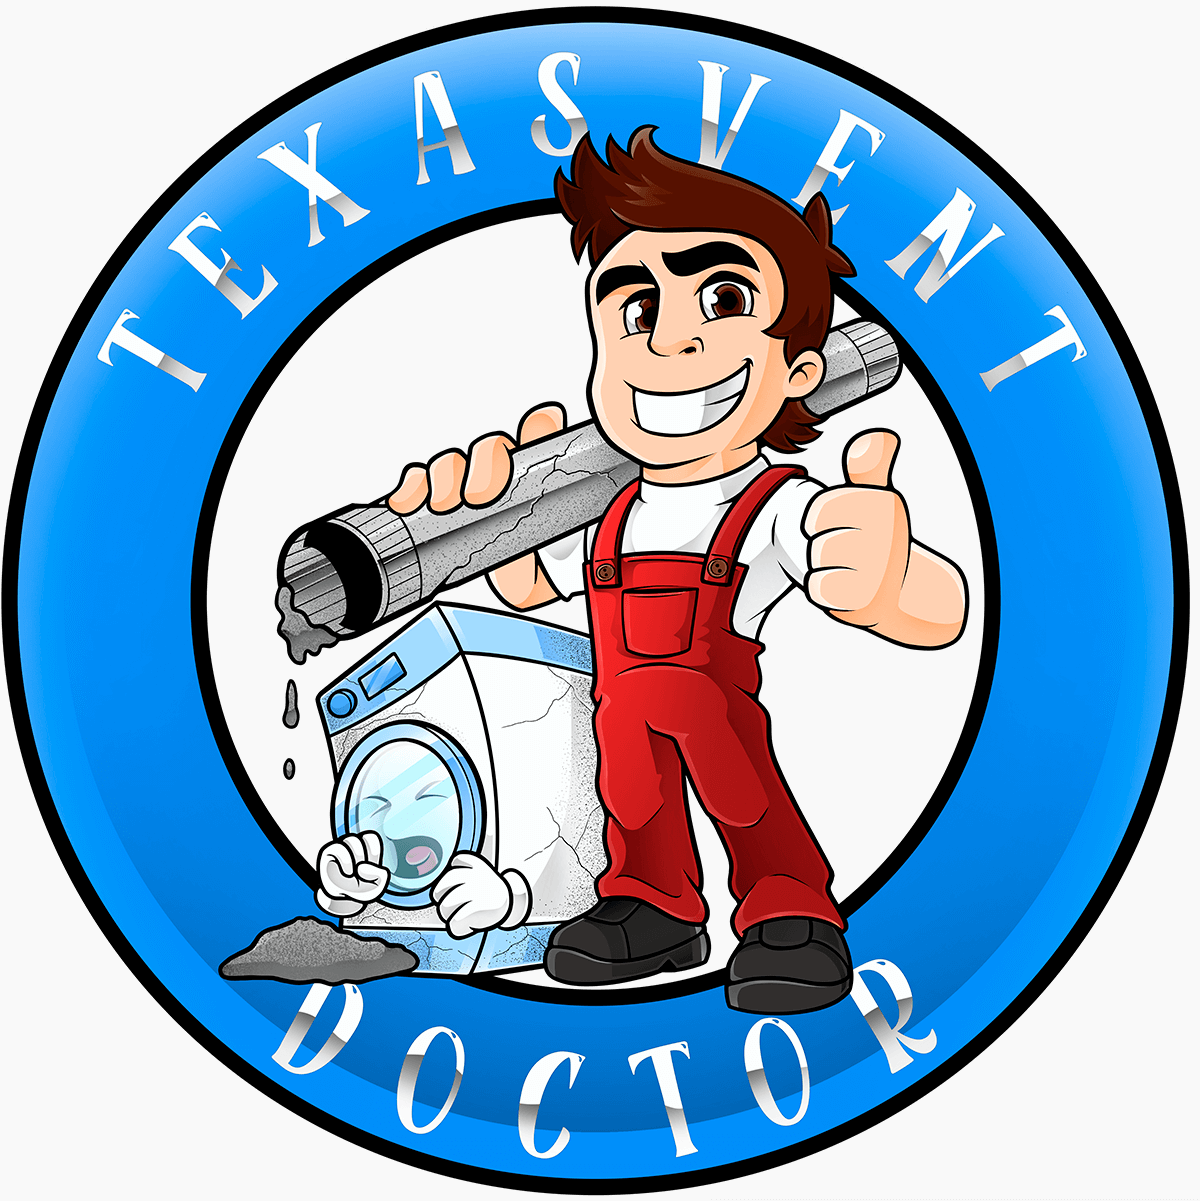 This is the Texas Vent Doctor logo